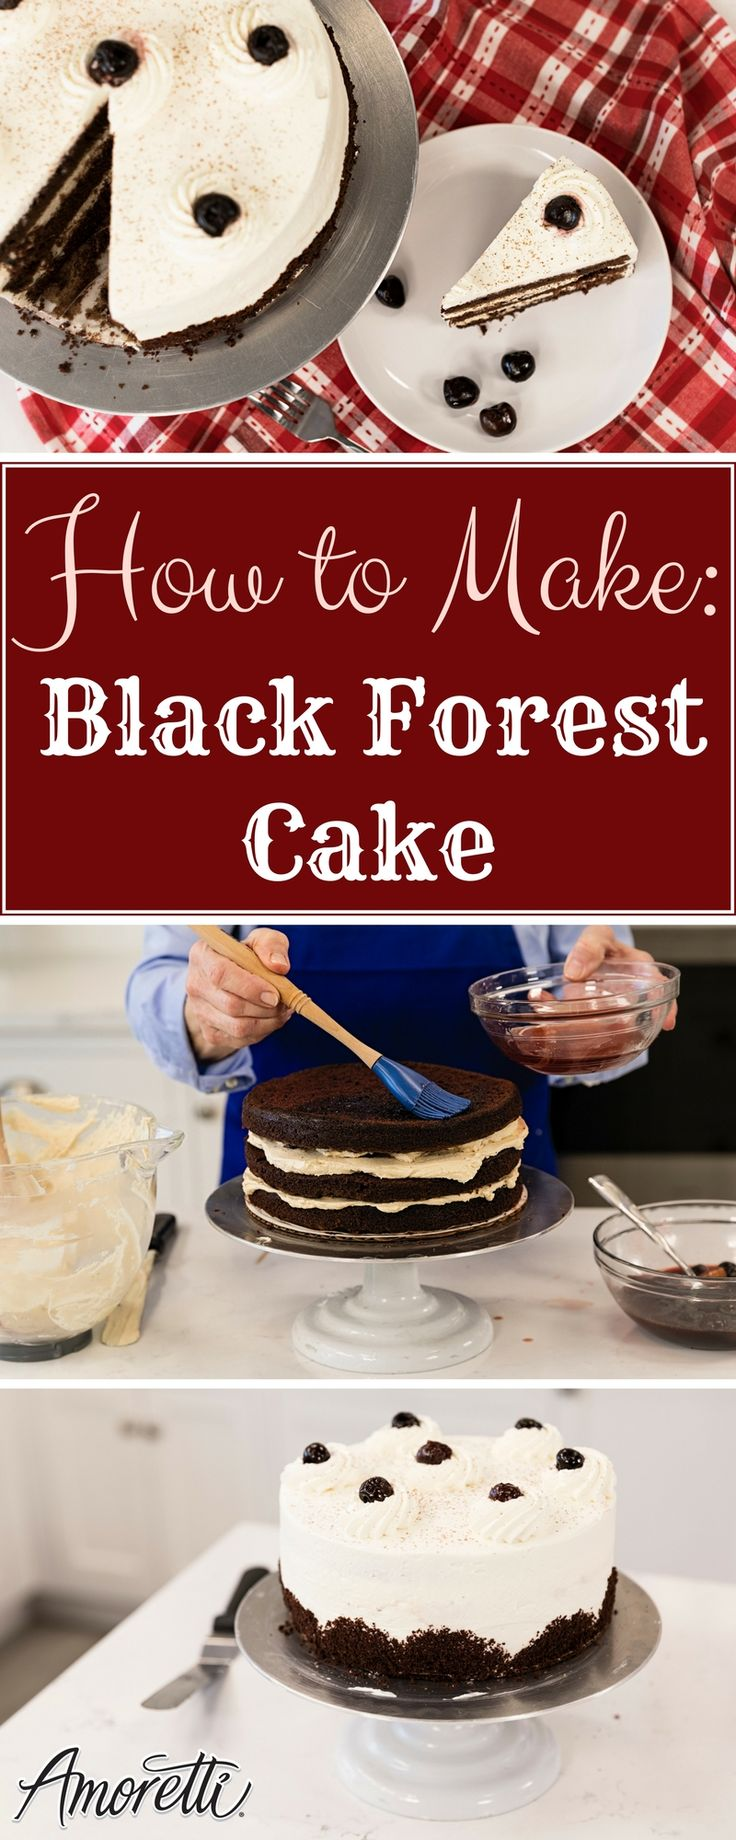 Black Forest Cake Recipe. When a recipe starts with drunken cherries, you know it's going to be good! Add in chocolate, espresso, and kirsch and we're looking at a stunning centerpiece for your next celebration.